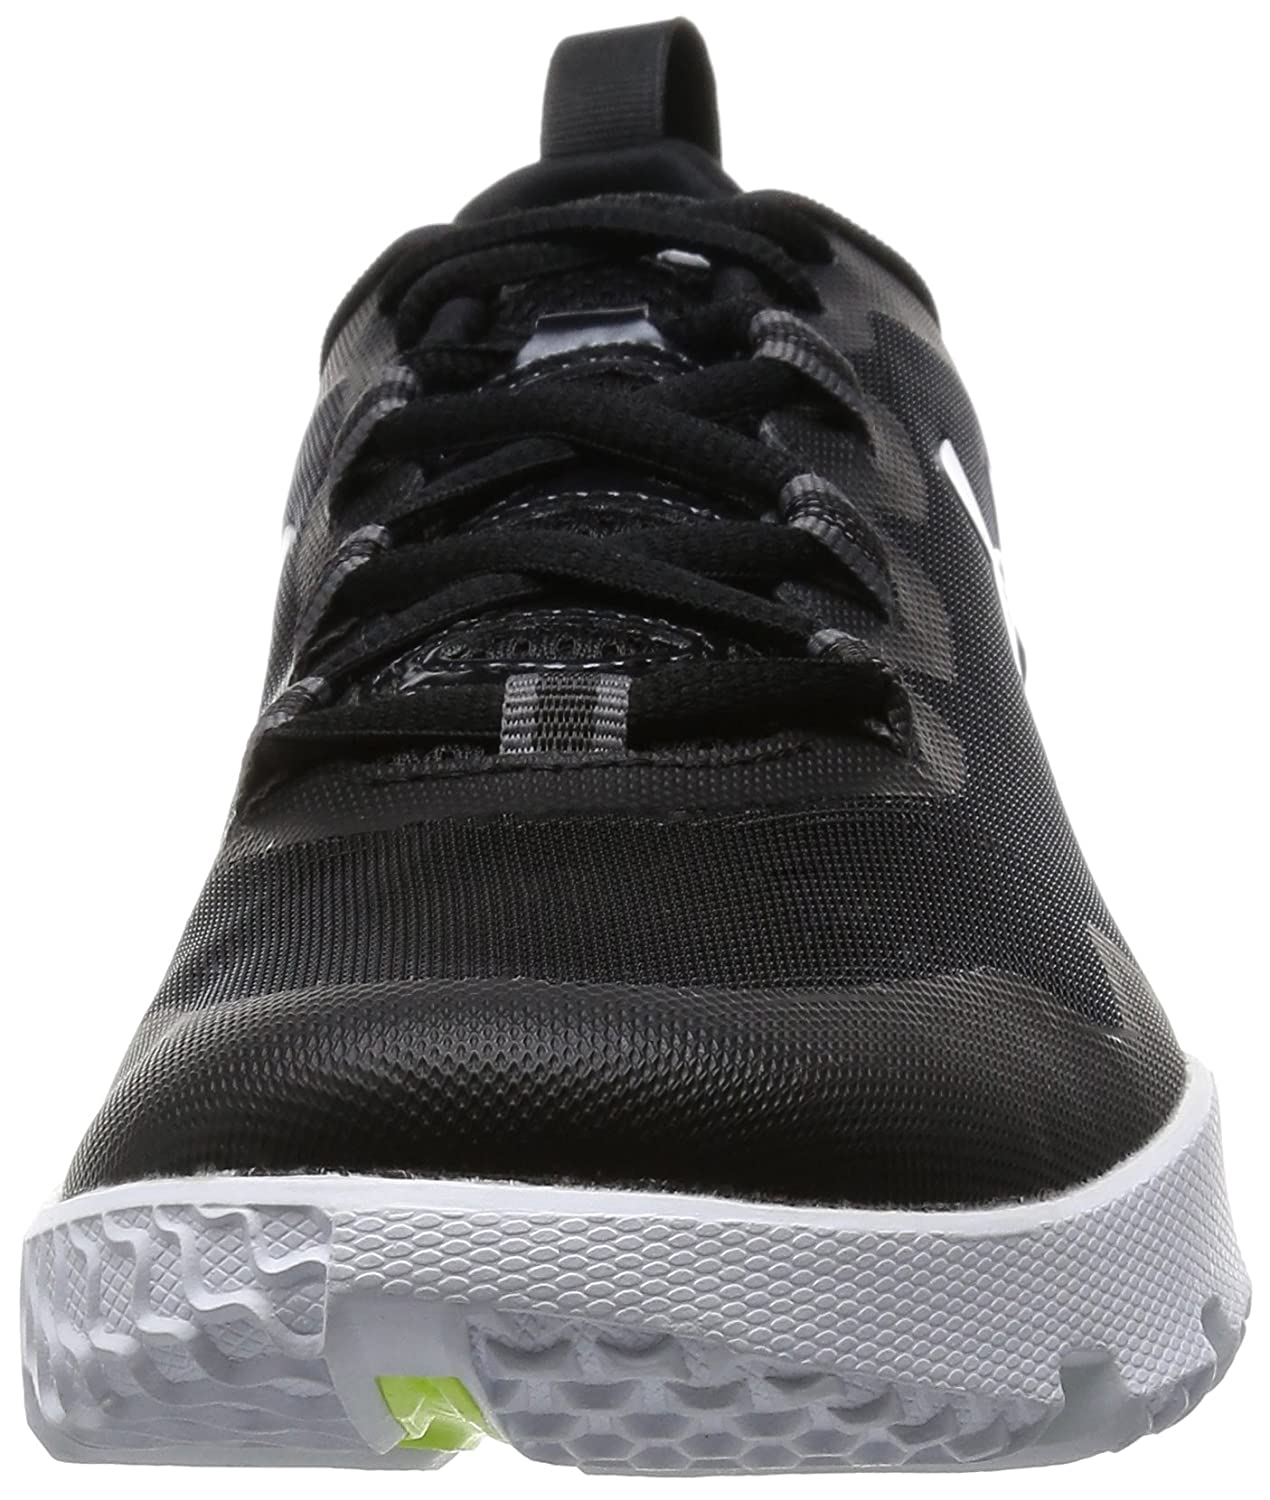 Under Armour Armour Armour Herren Ua Charged Ultimate Tr Low Turnschuhe d4bc05